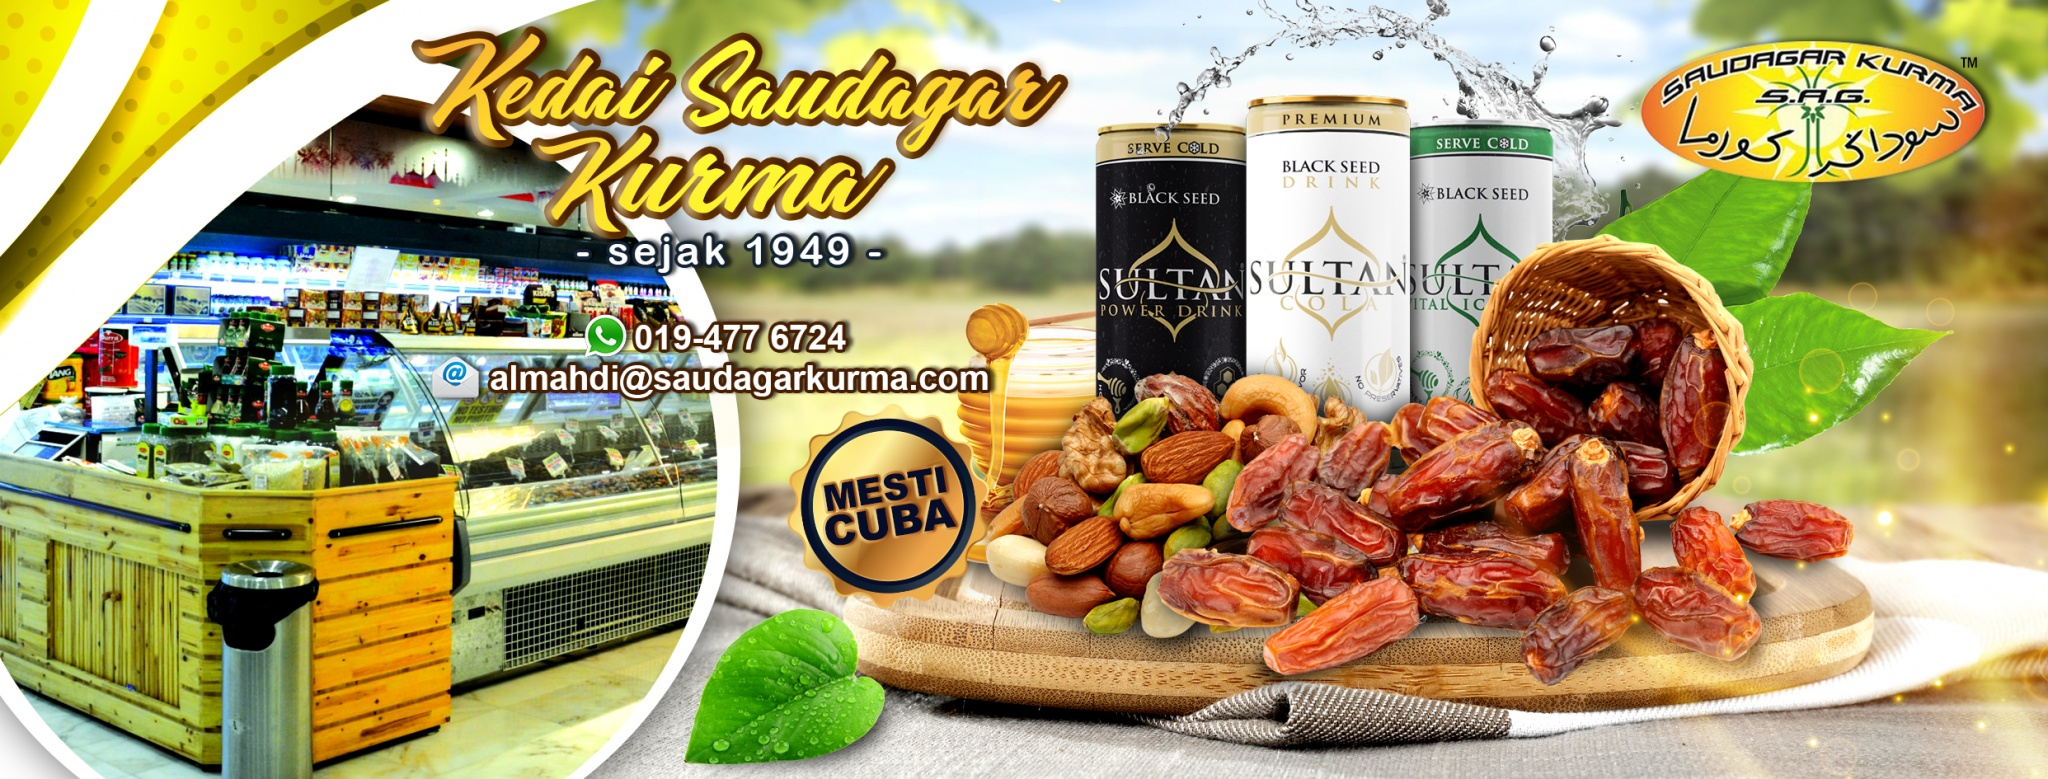 Saudagar%20Kurma-FB%20Cover%20Pages%203